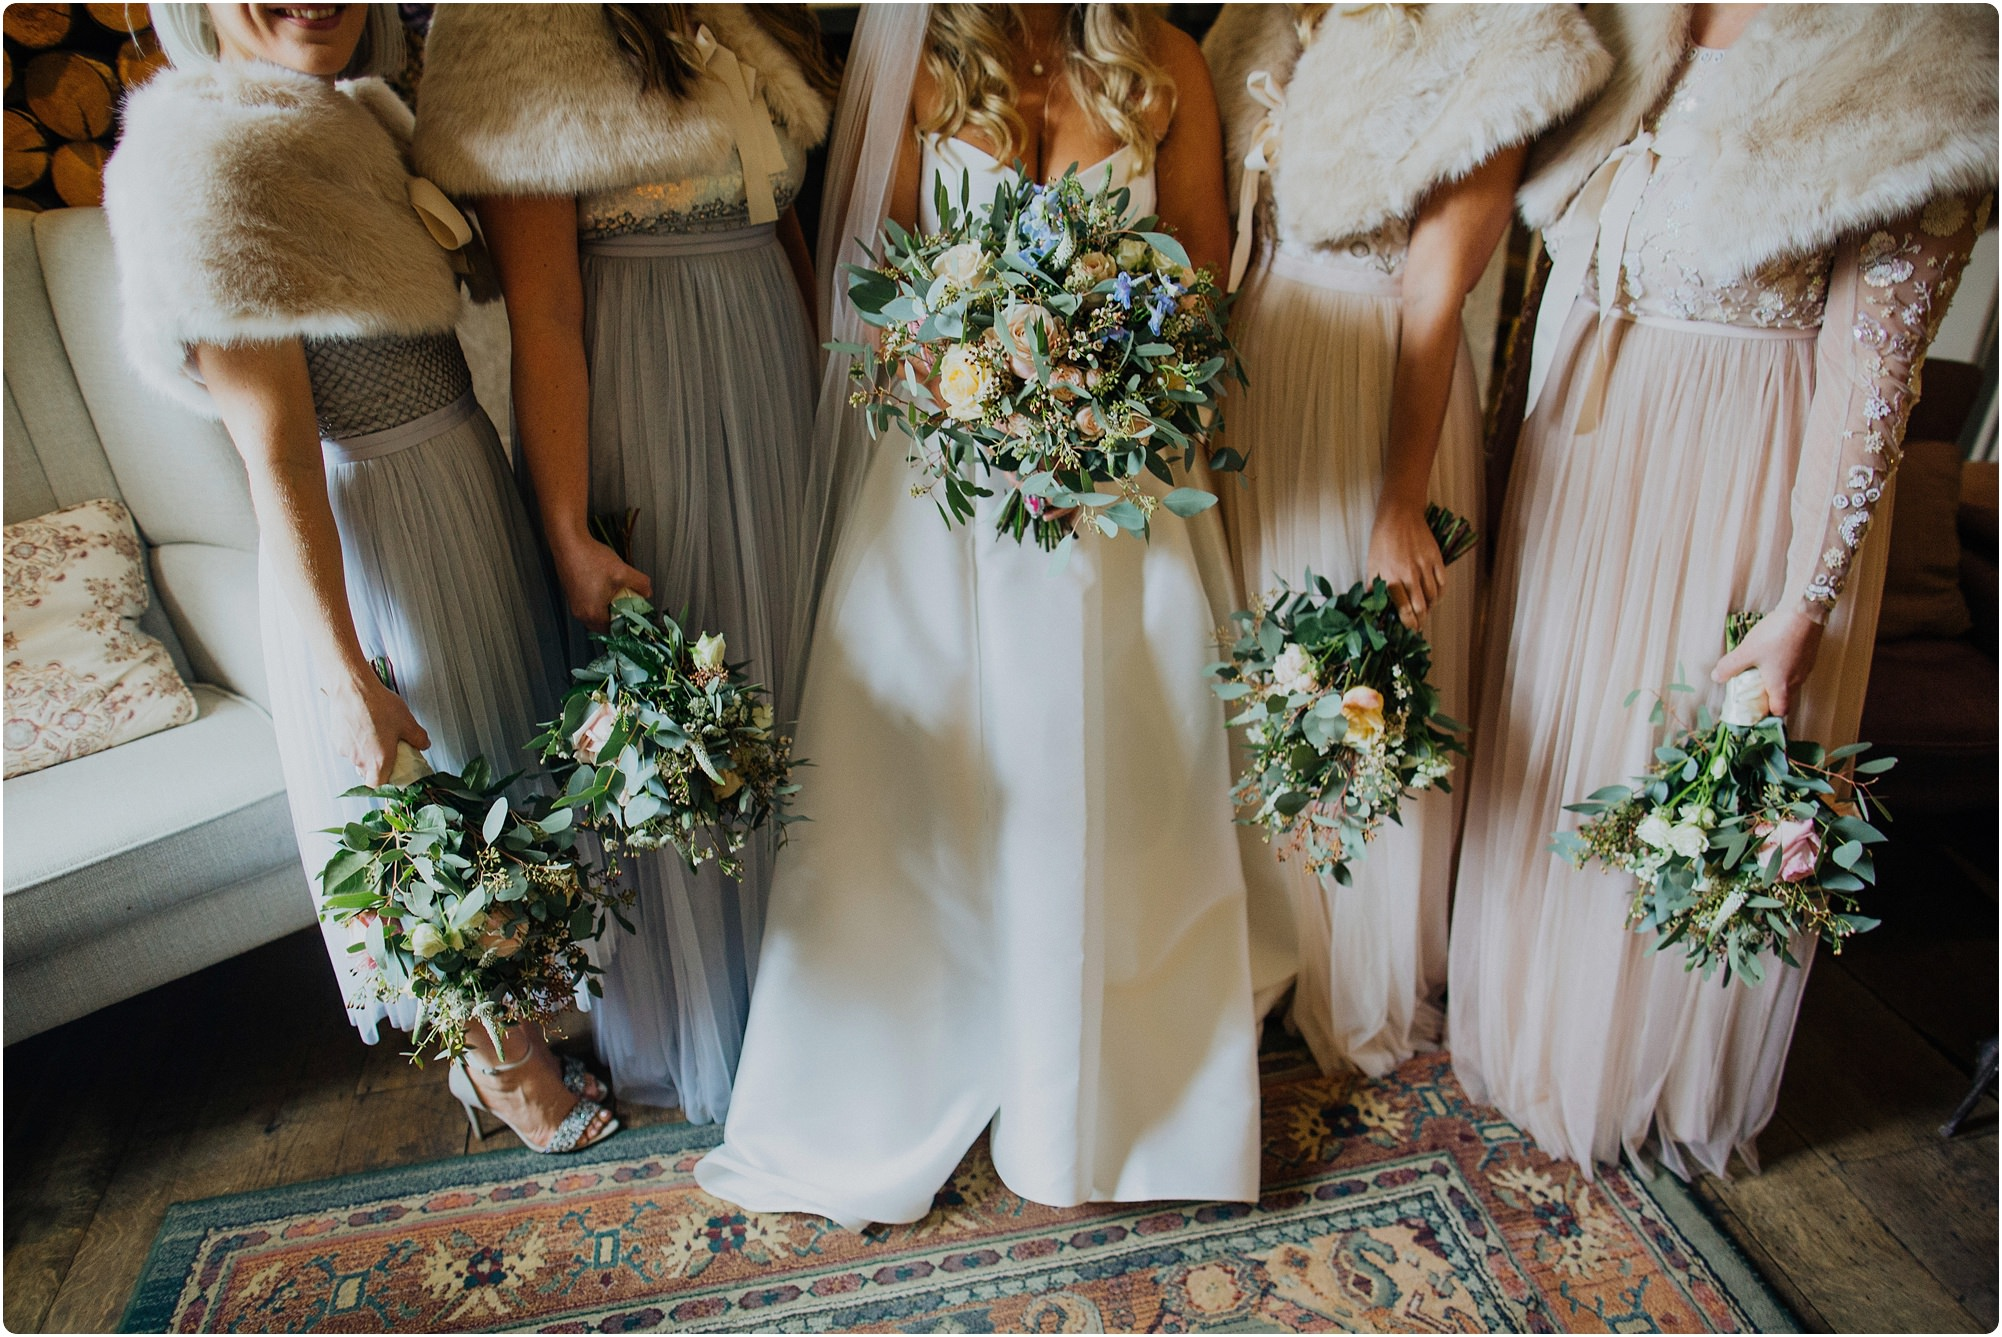 needle and thread bridesmaid dresses and flowers for a Barnsley house wedding